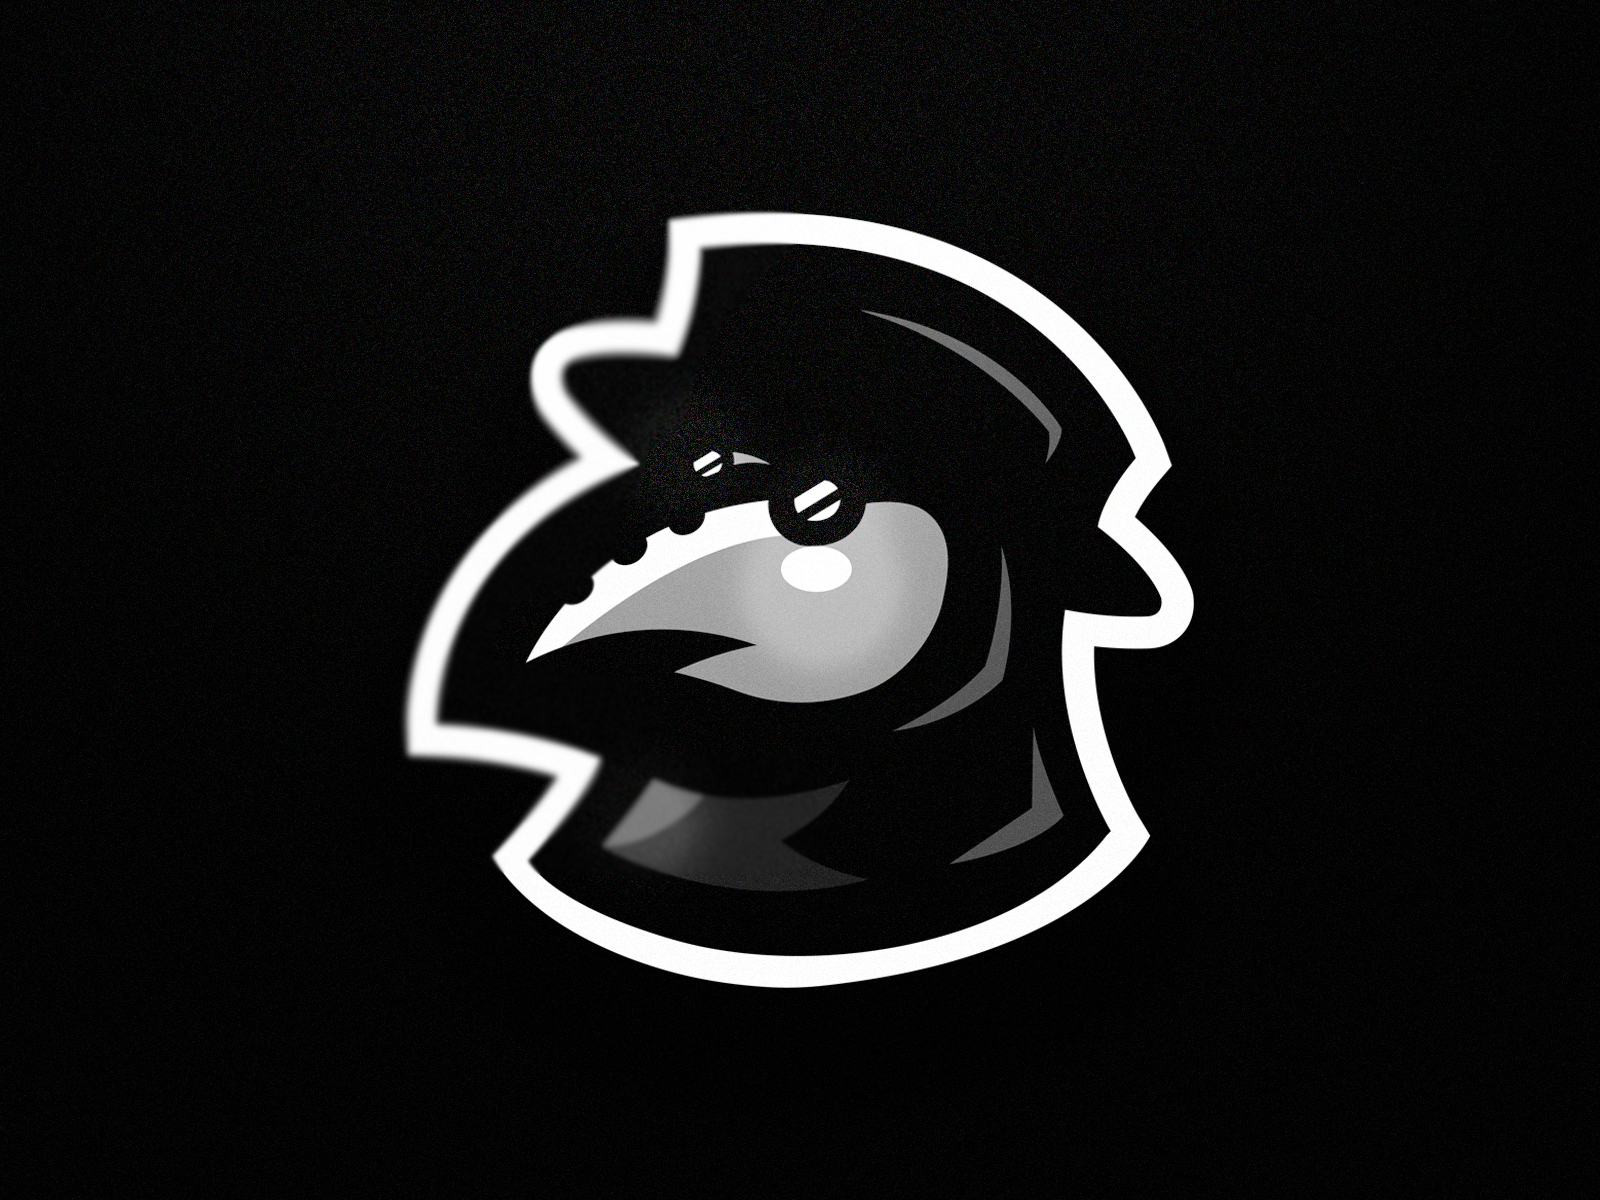 Plague Doctor mascot logo by Morcoil on Dribbble.